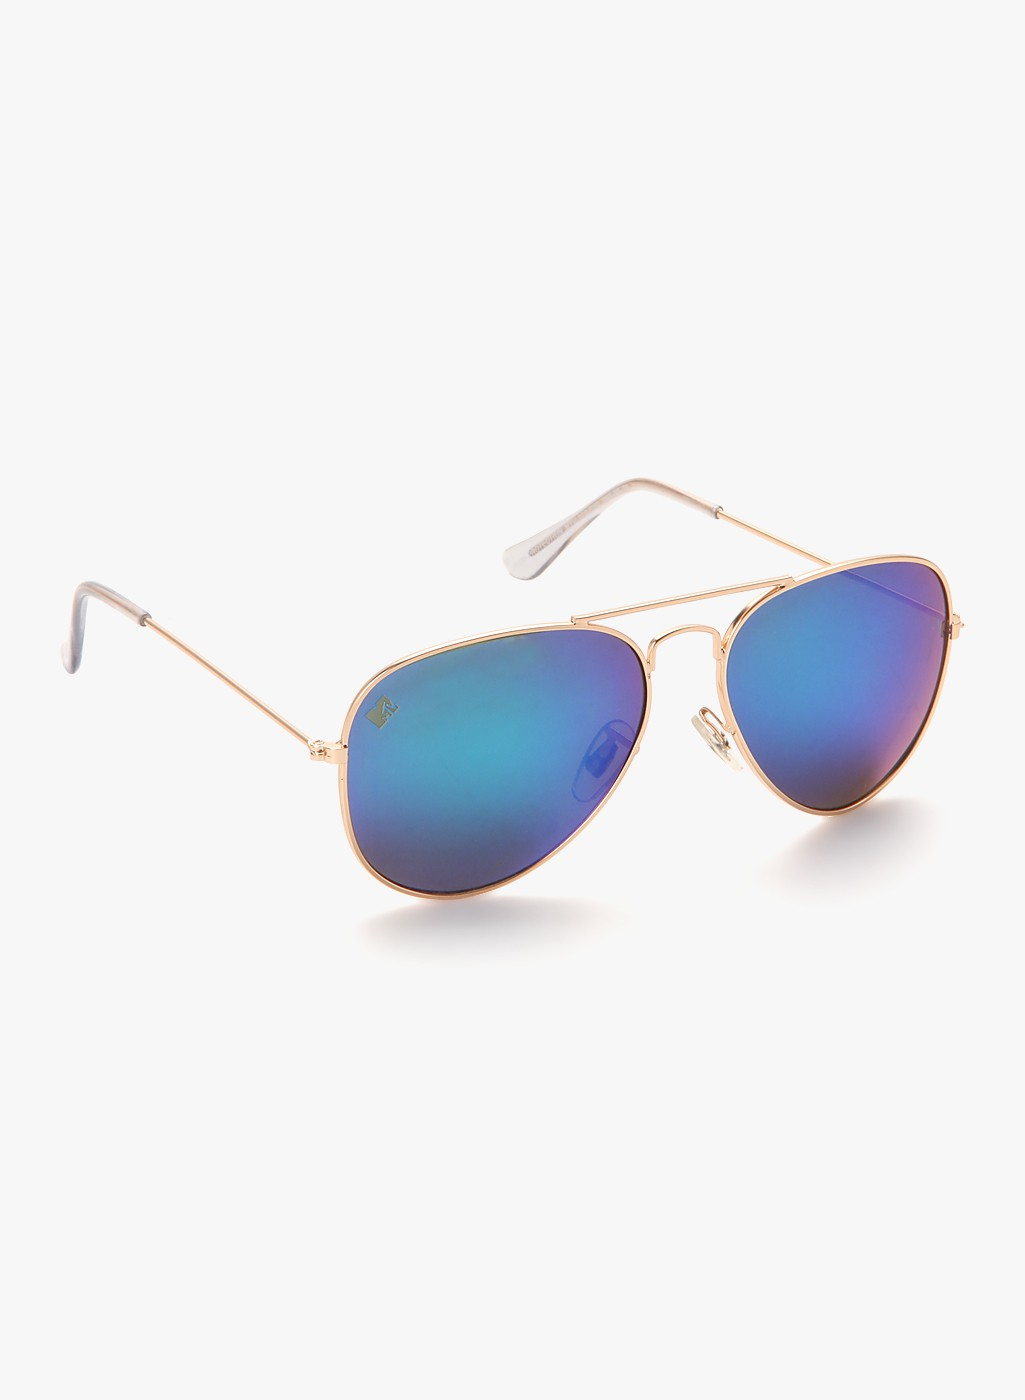 Deals - Delhi - IDEE, MTV & more <br> Mens Sunglasses<br> Category - sunglasses<br> Business - Flipkart.com